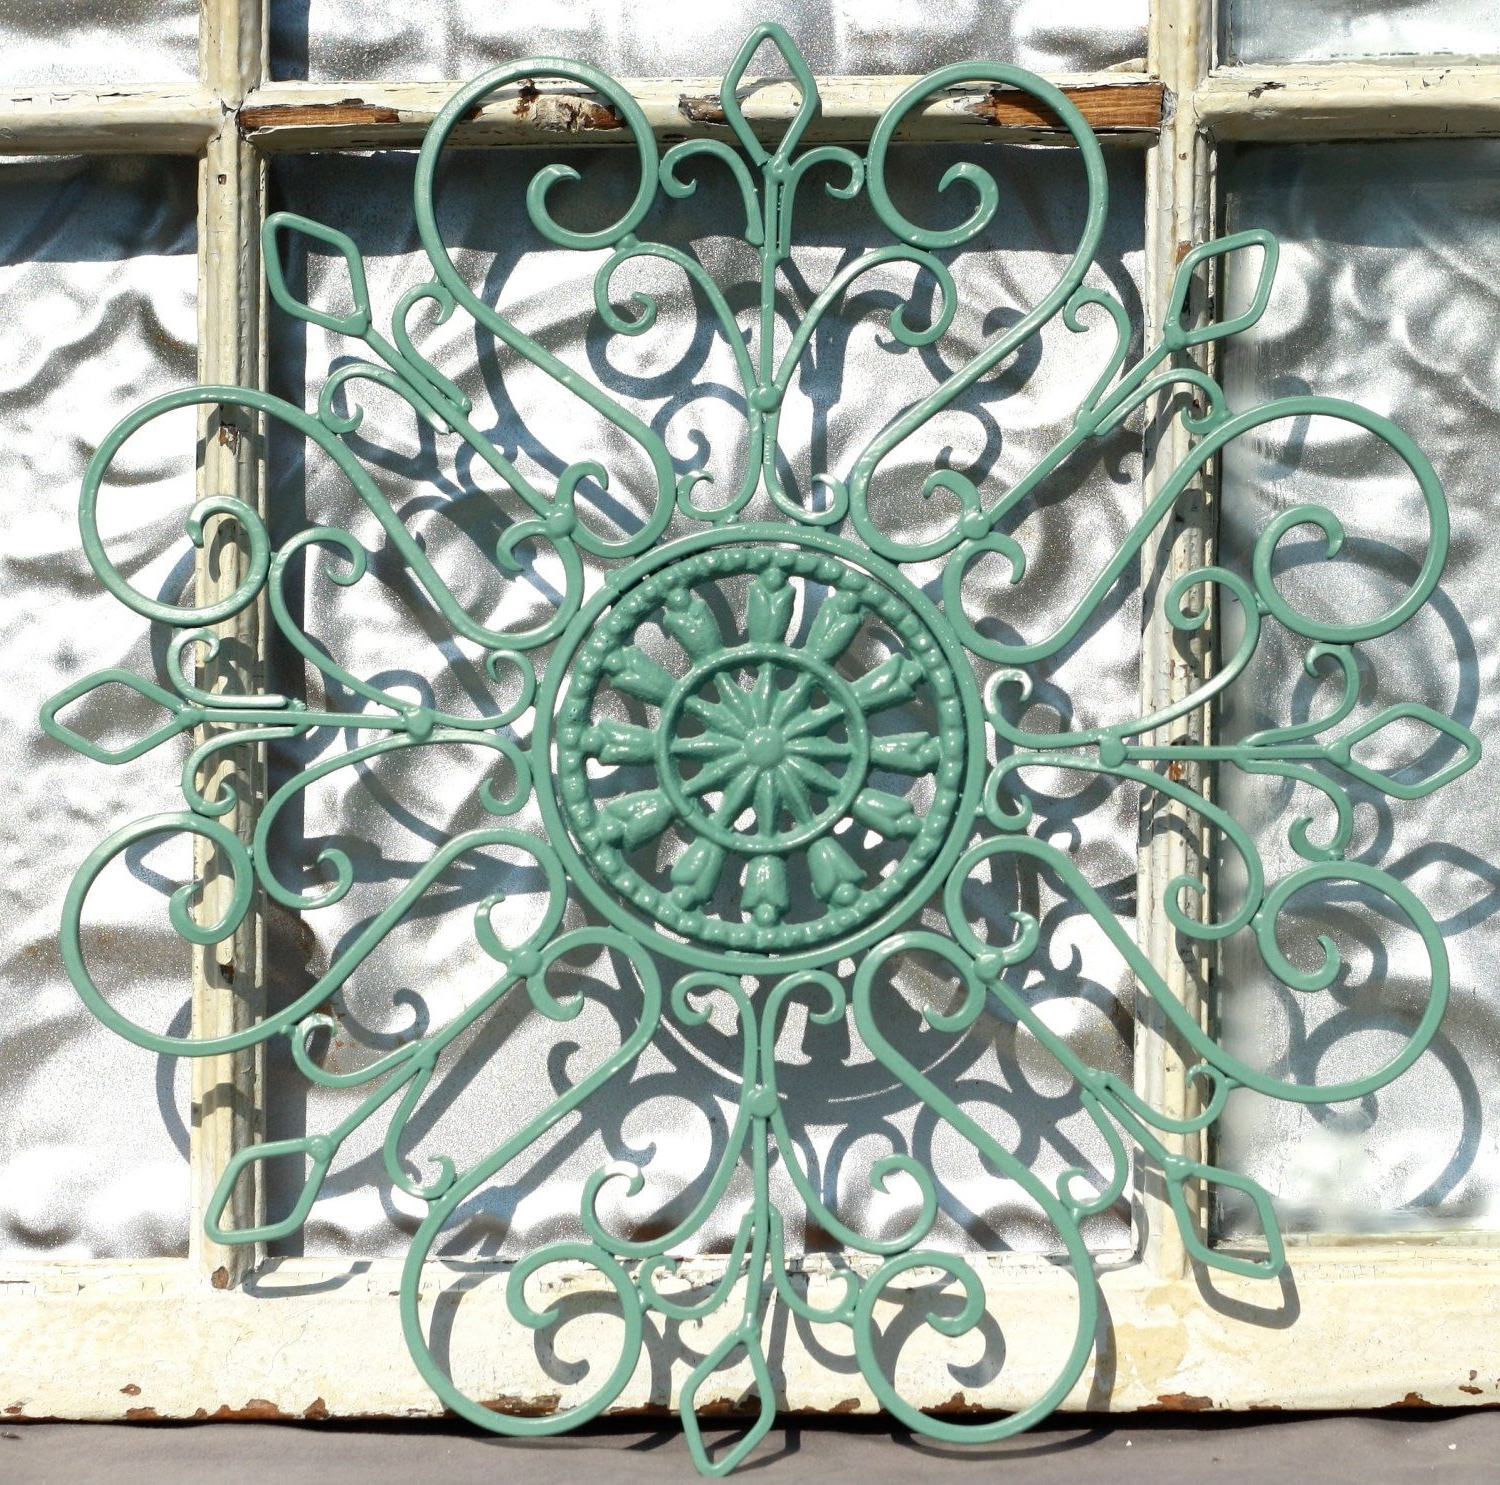 Wrought Iron Wall Decor/ Metal Wall Hanging/ Indoor/ Outdoor Metal Inside Latest Metal Outdoor Wall Art (View 20 of 20)